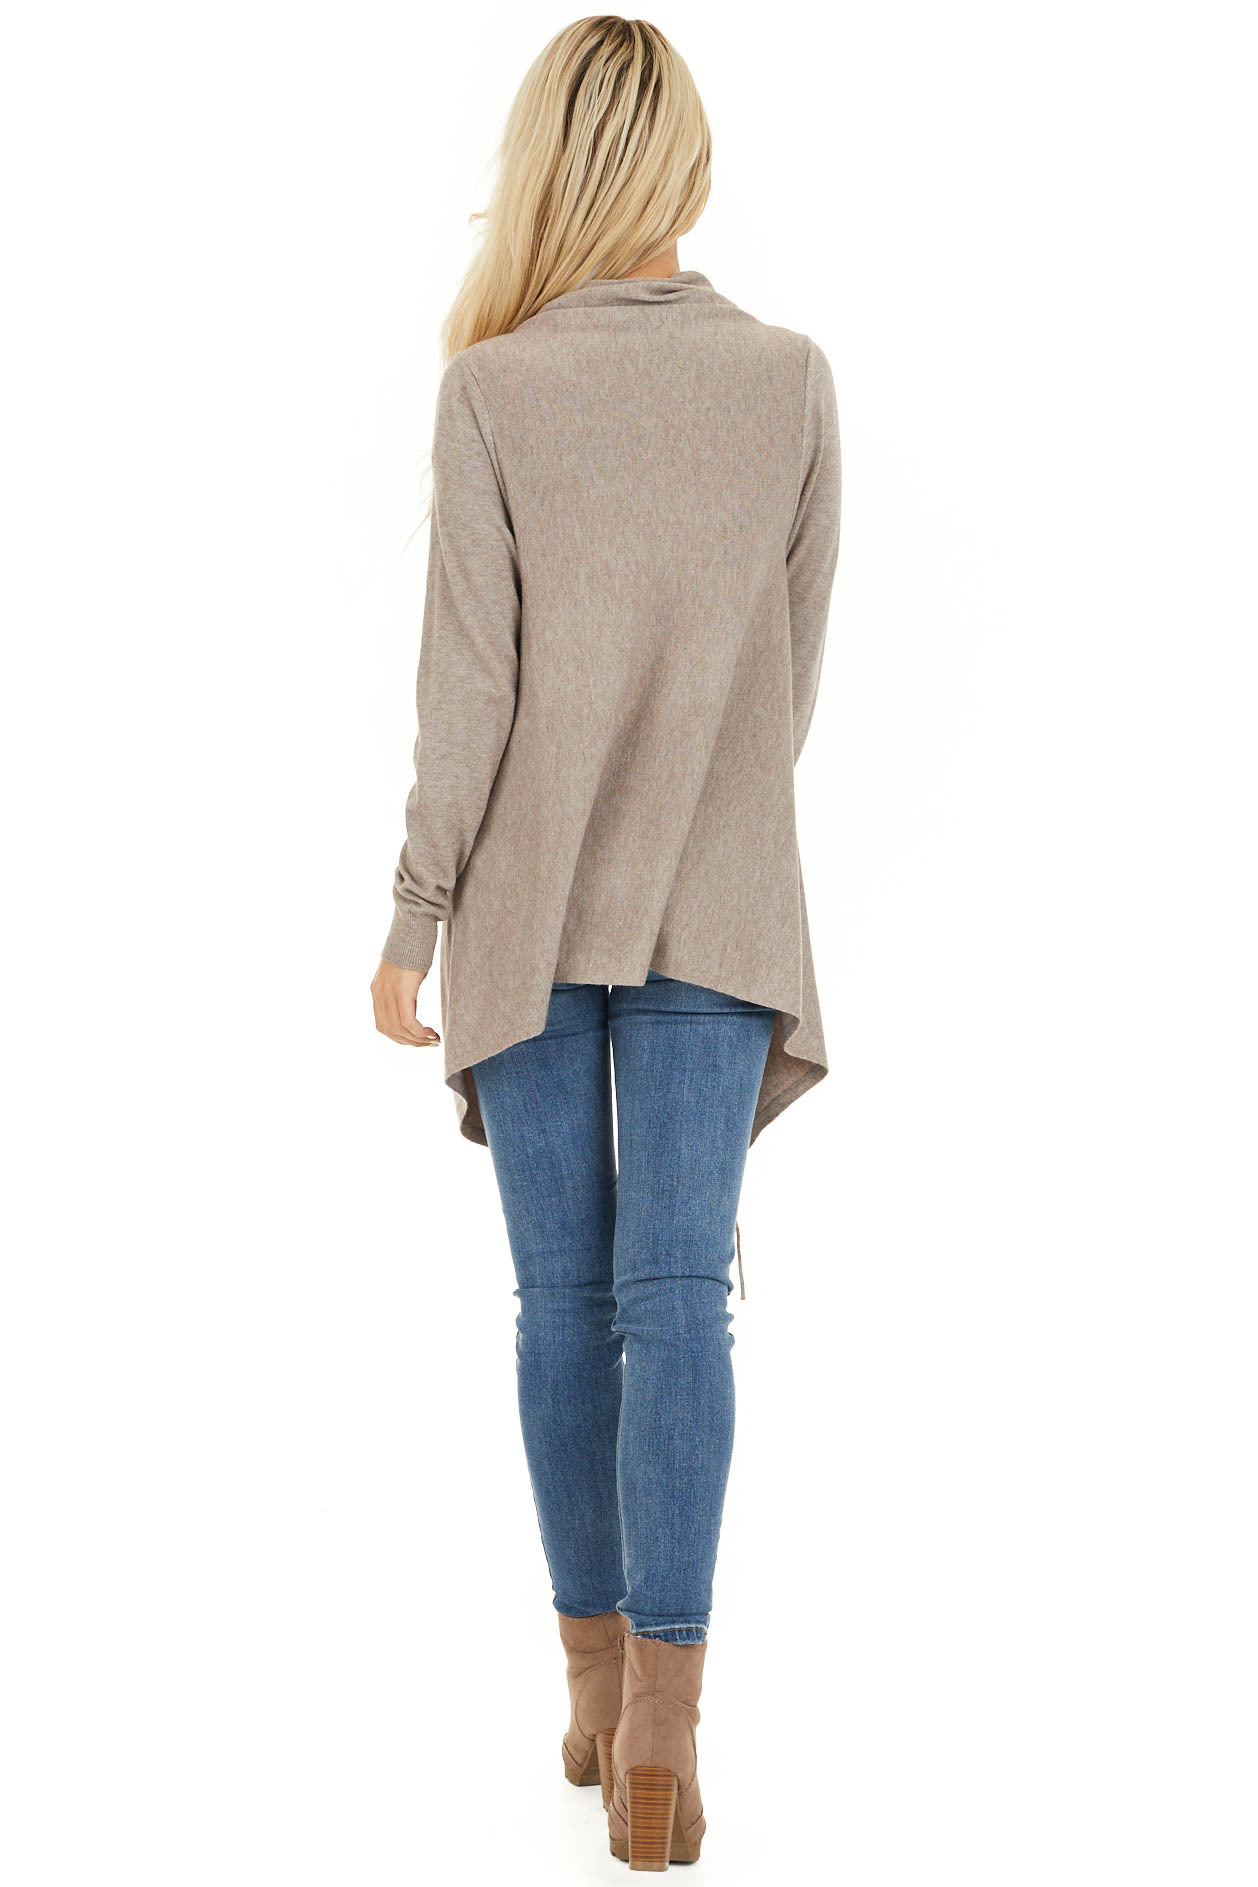 Oatmeal Cowl Neck Knit Poncho with Tassel Details back full body